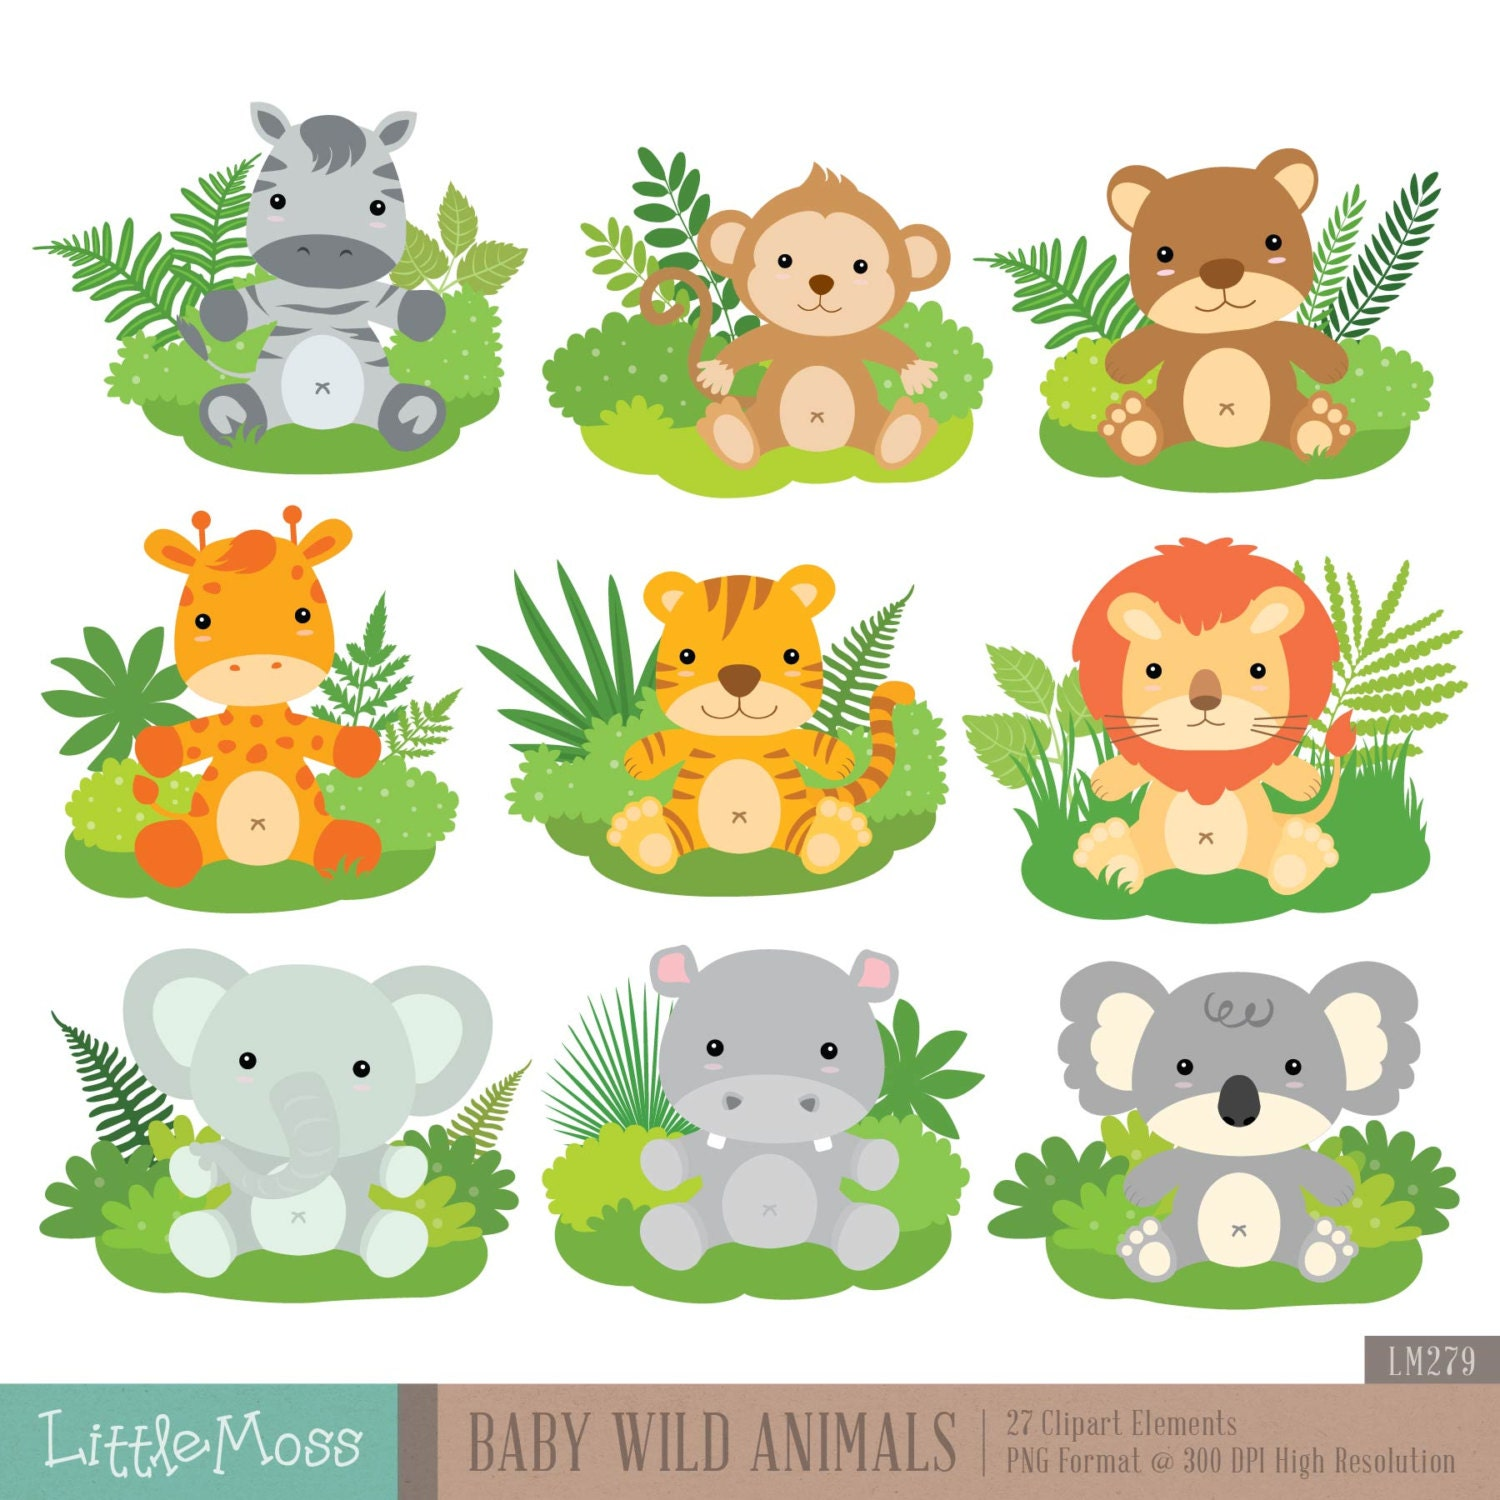 B b animaux sauvages num rique clipart etsy - Bebe animaux sauvage ...